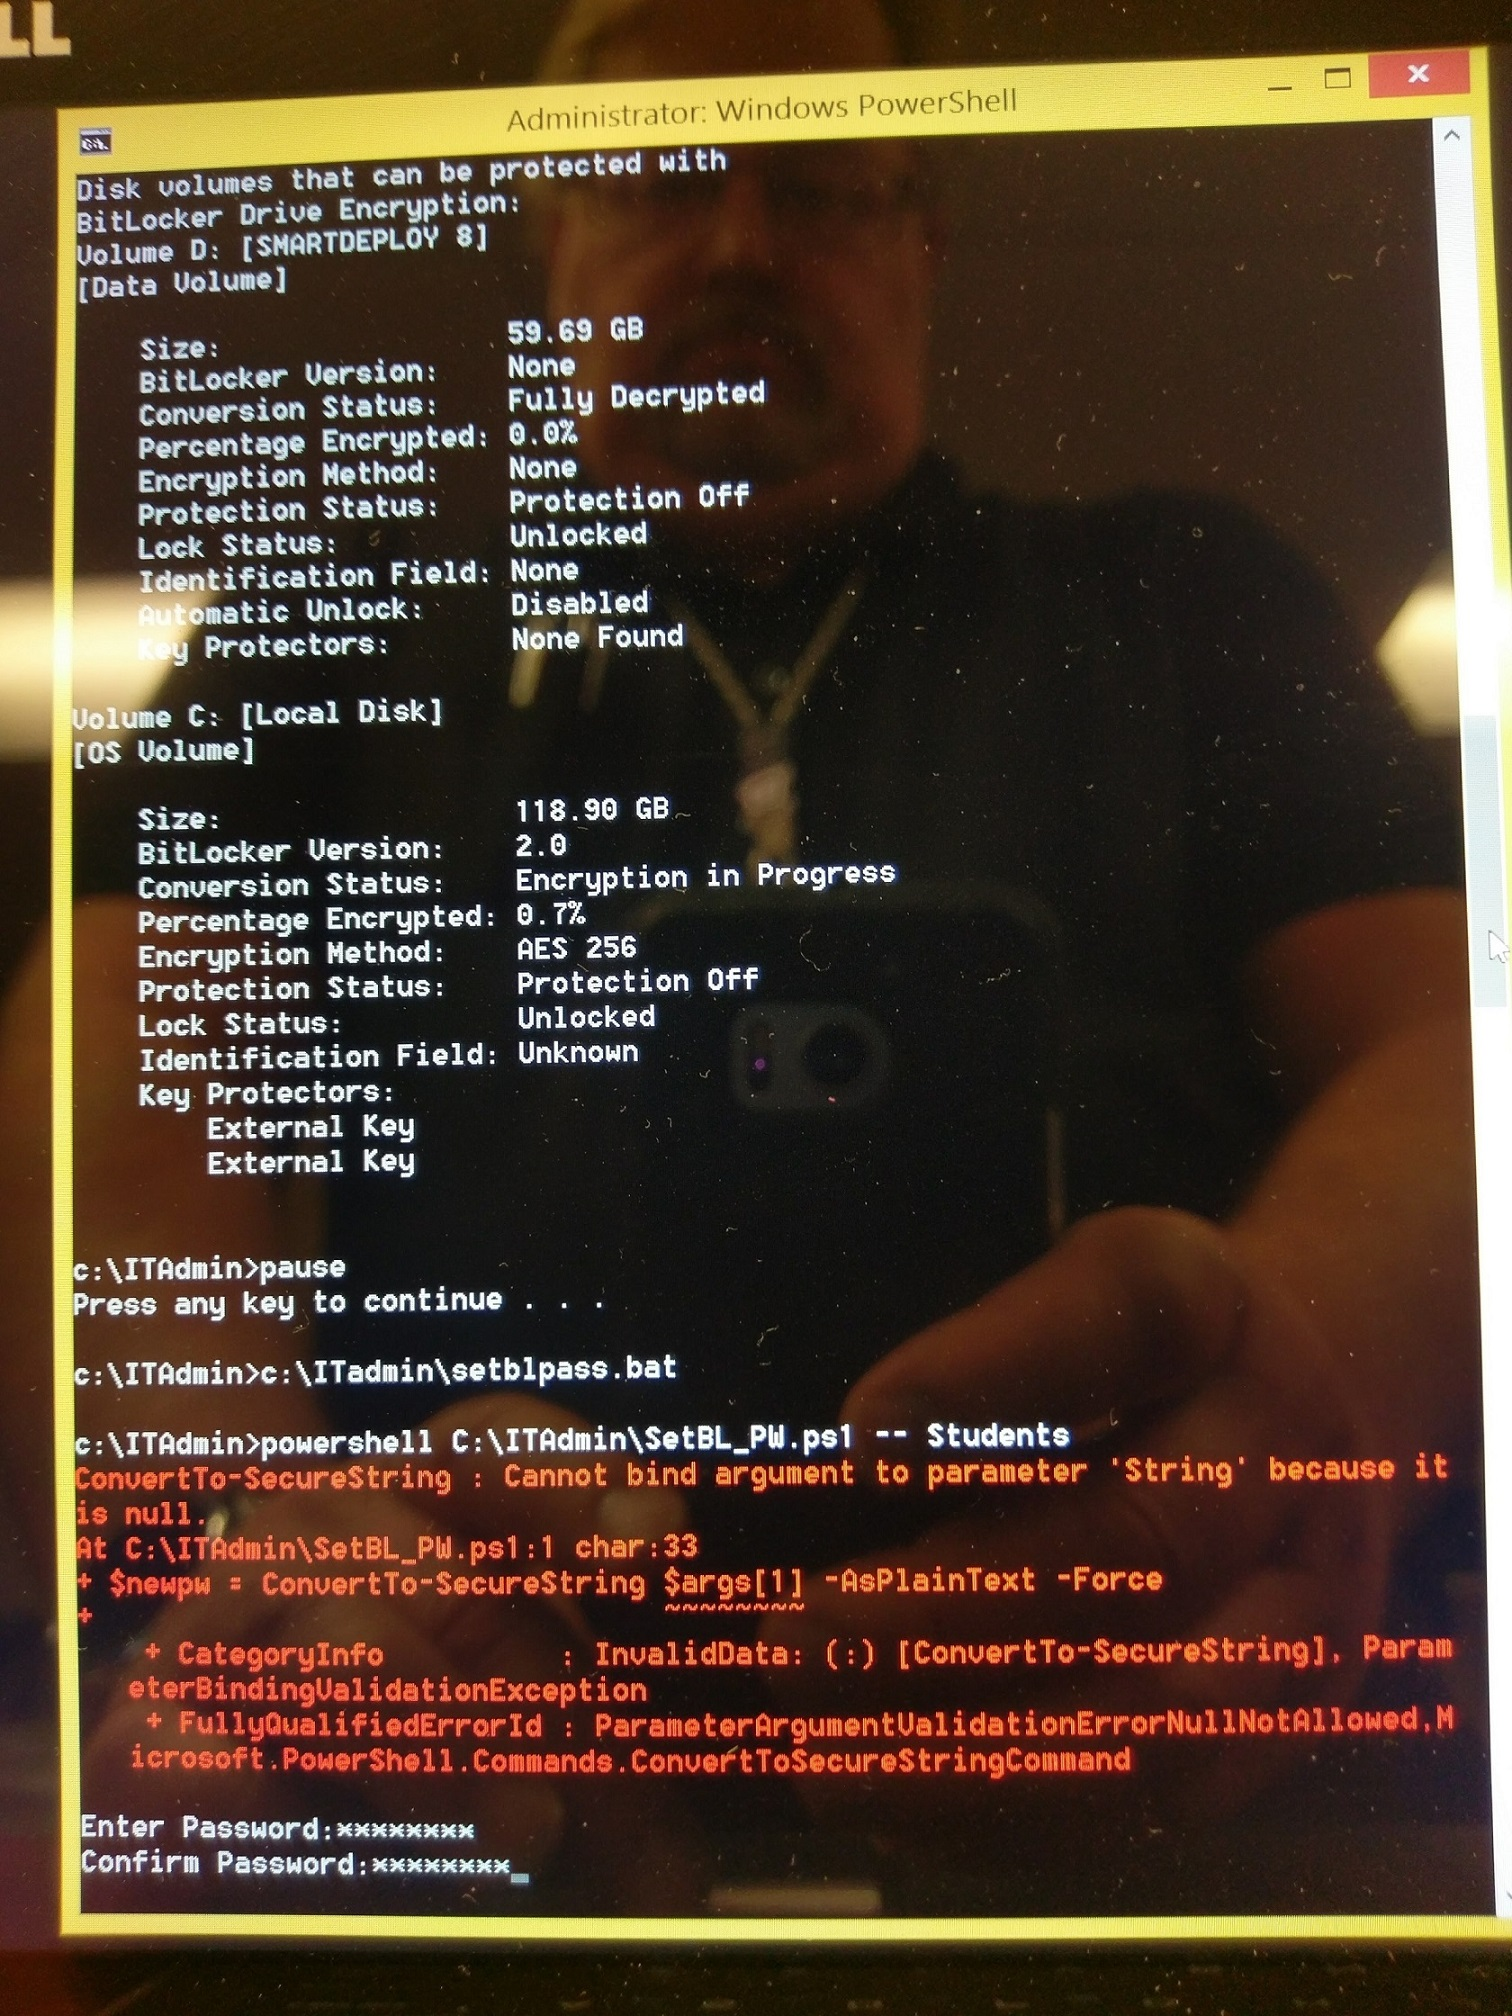 Manage tpm command line - If You Really Want To See The Result Like I Mentioned Earlier The Does Not Show Up When The Code Is Executed Even Though It Is In The Command Line